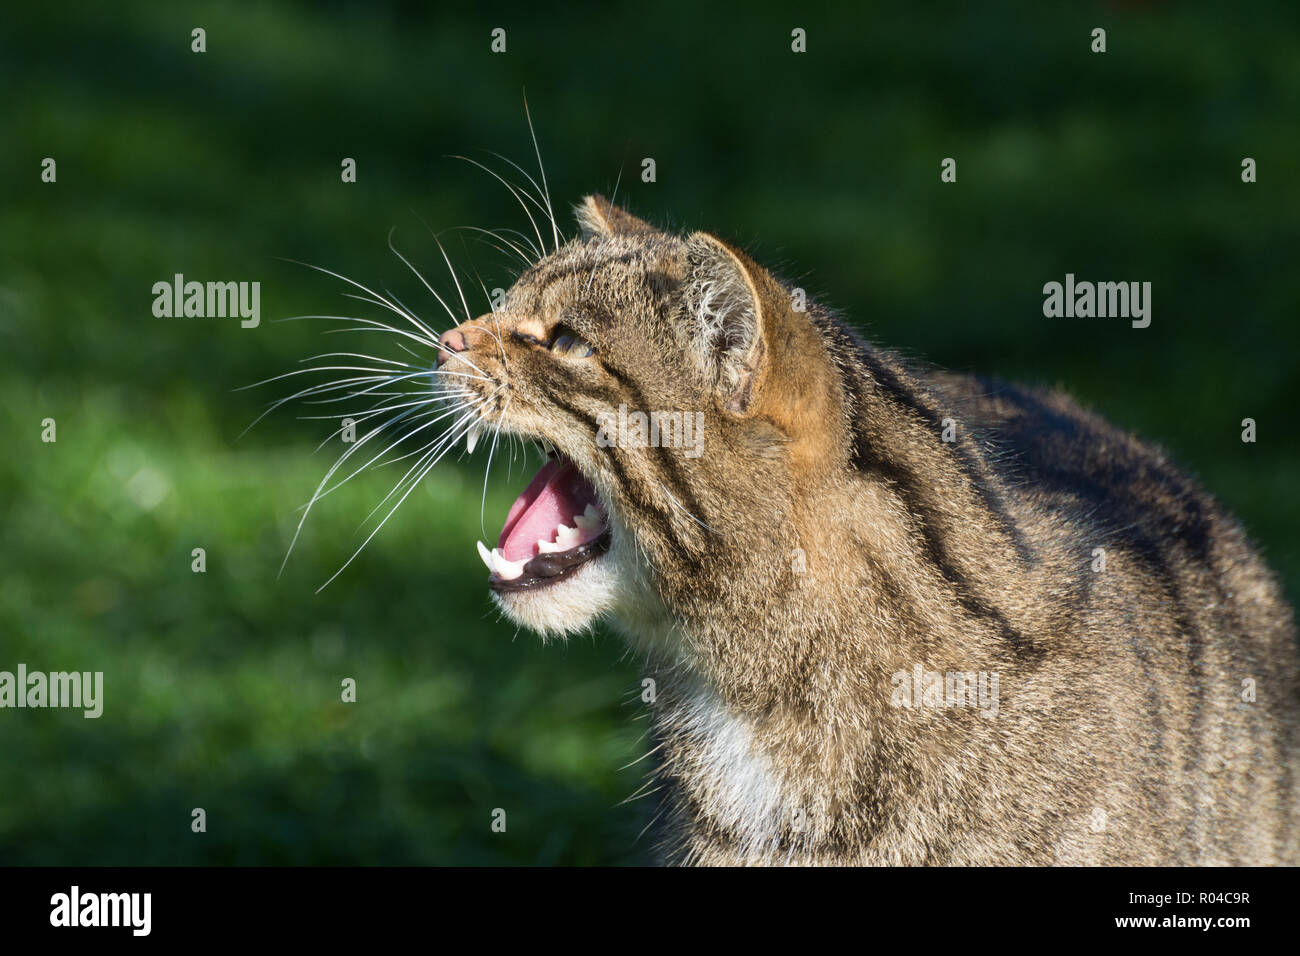 Close-up of Scottish wildcat (Felis silvestris grampia) captive with teeth bared snarling - Stock Image